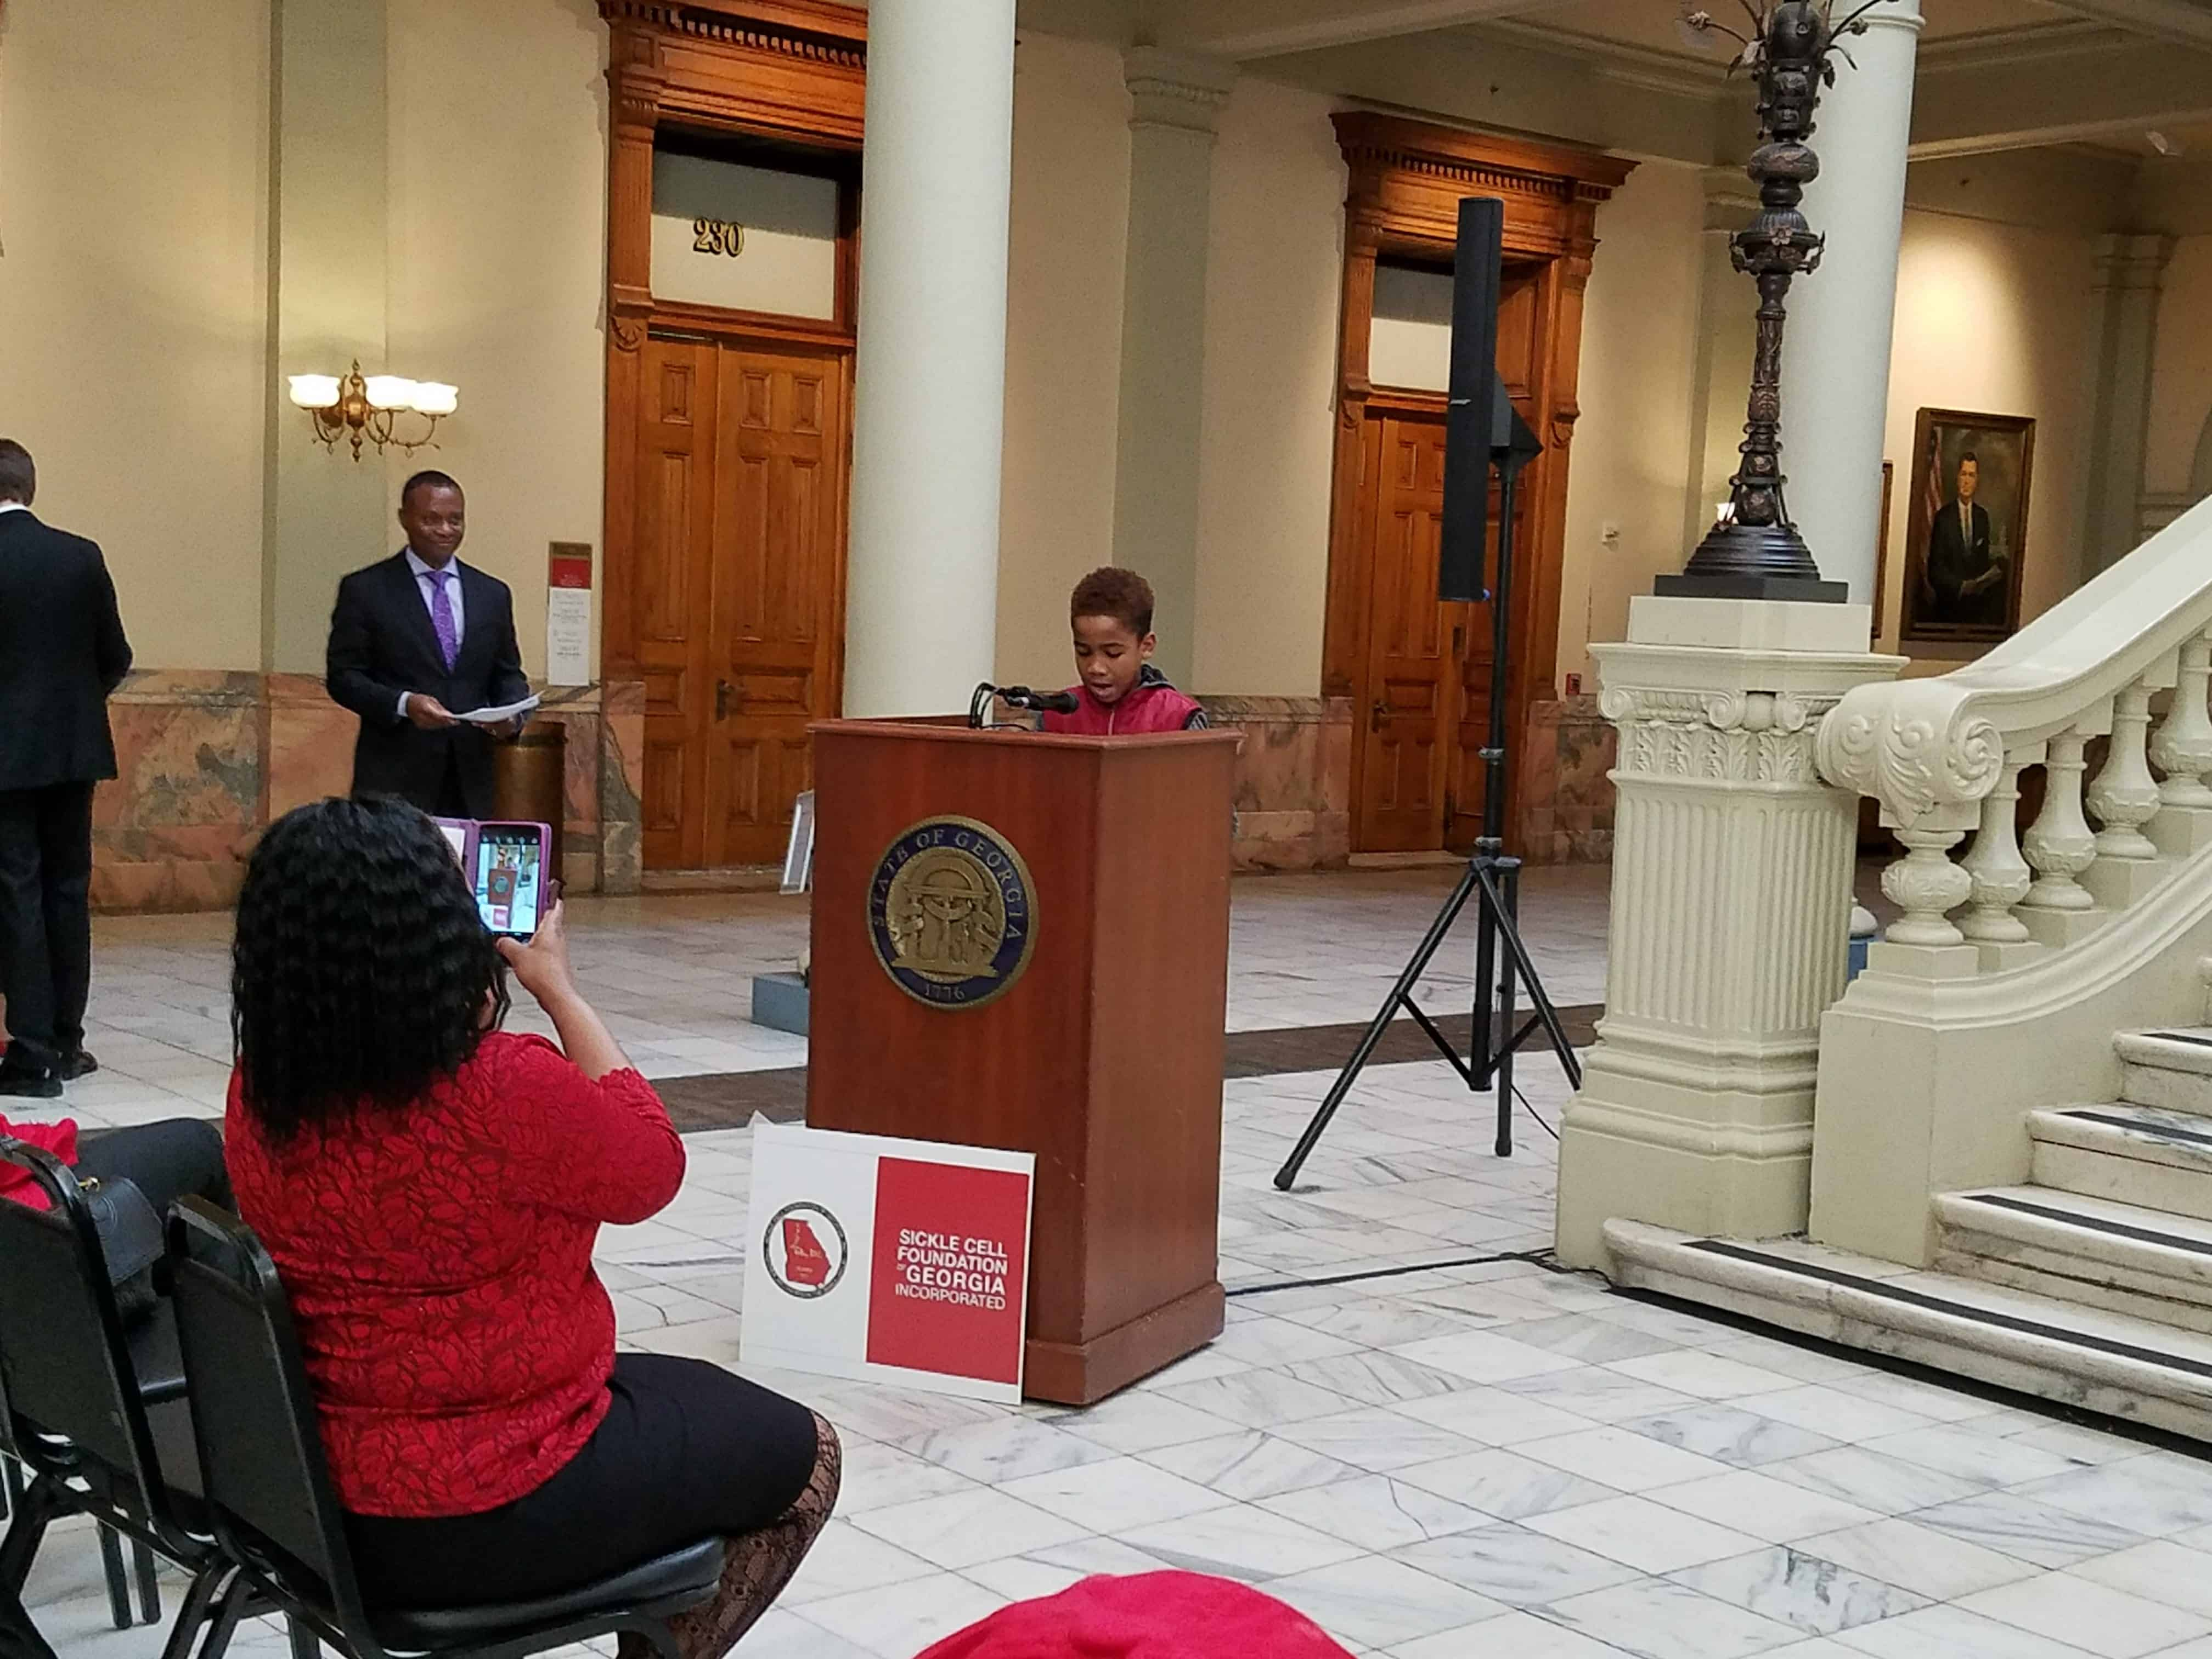 Sickle Cell Day at the Capitol – January 25, 2017